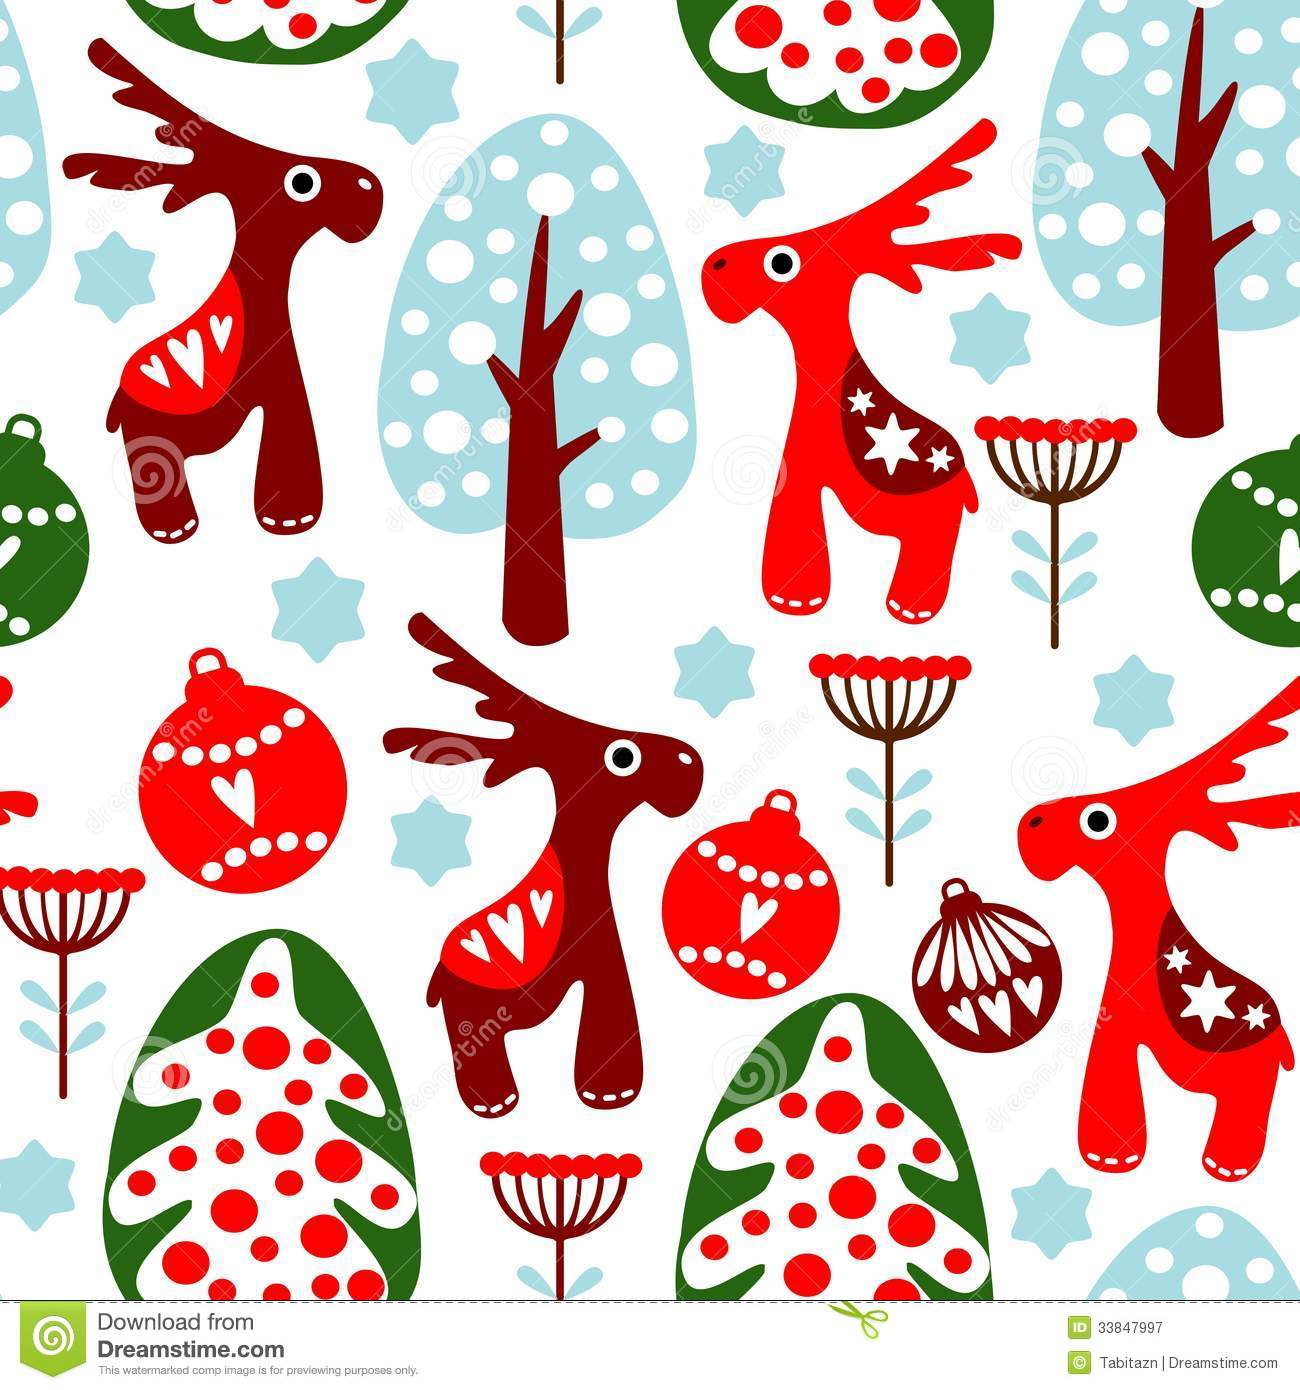 Wallpaper Cath Kidston Iphone Cute Seamless Pattern With Christmas Balls Reind Stock